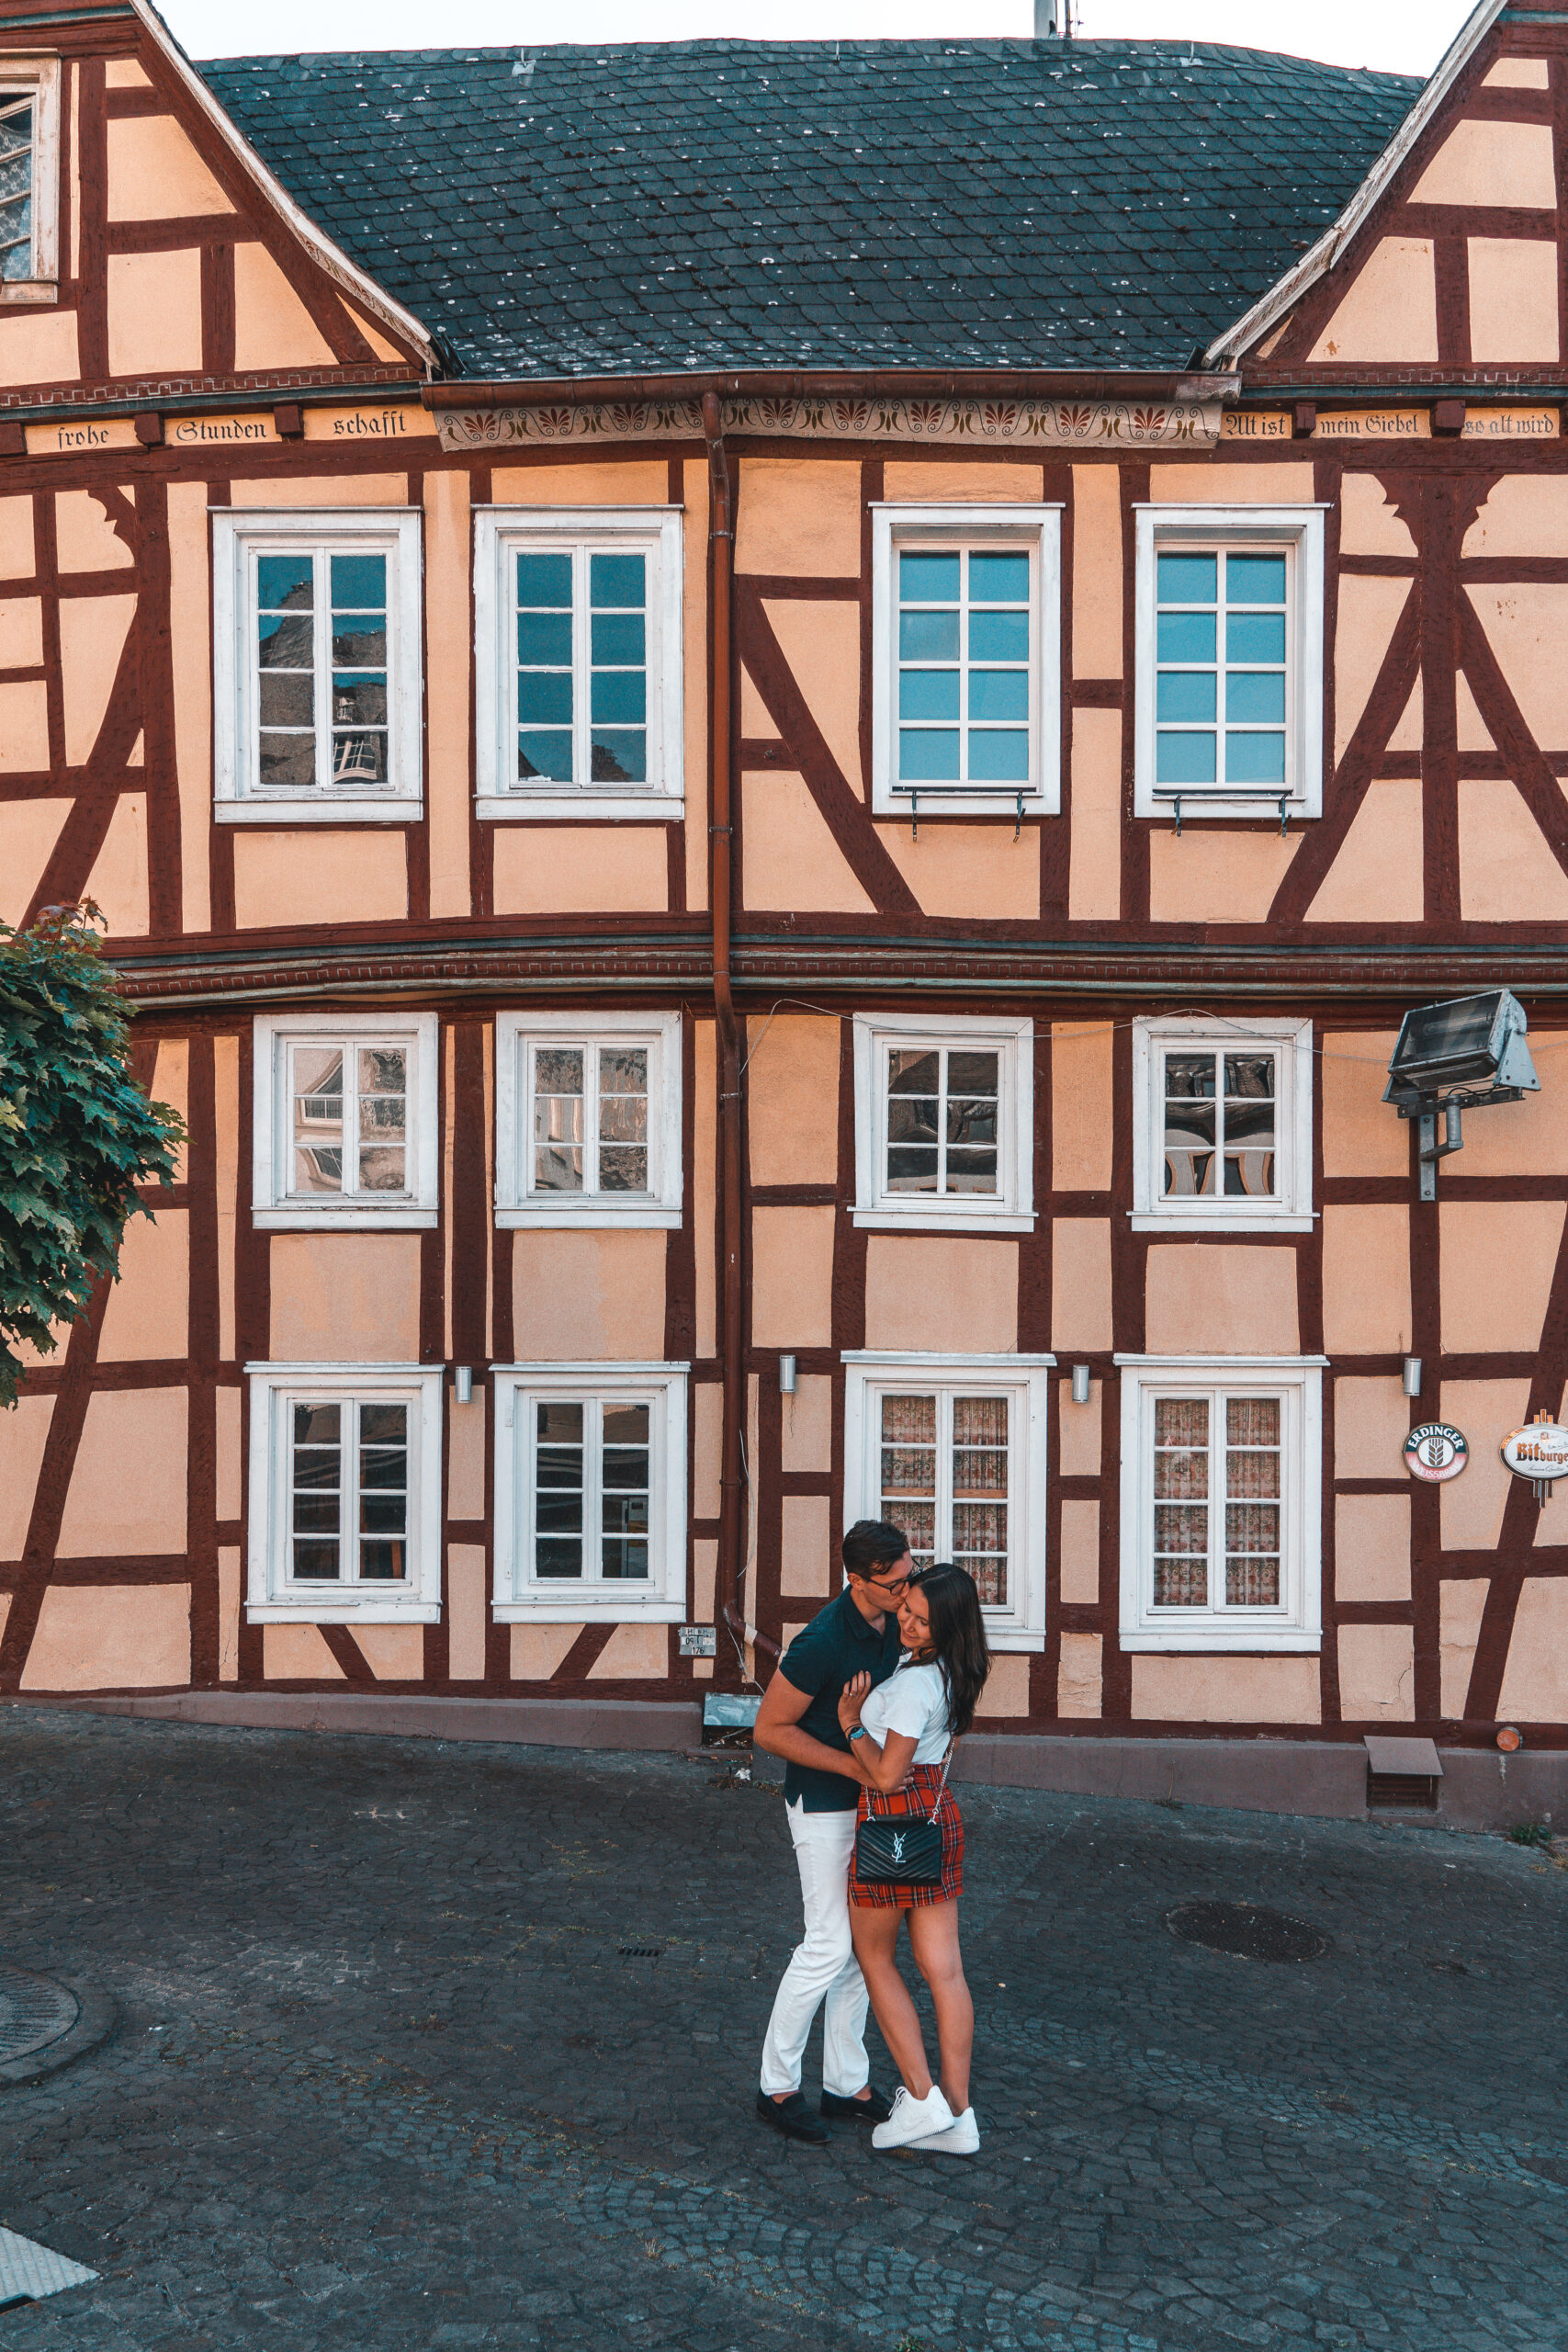 Linz am Rhein |Top Day Trips from Cologne